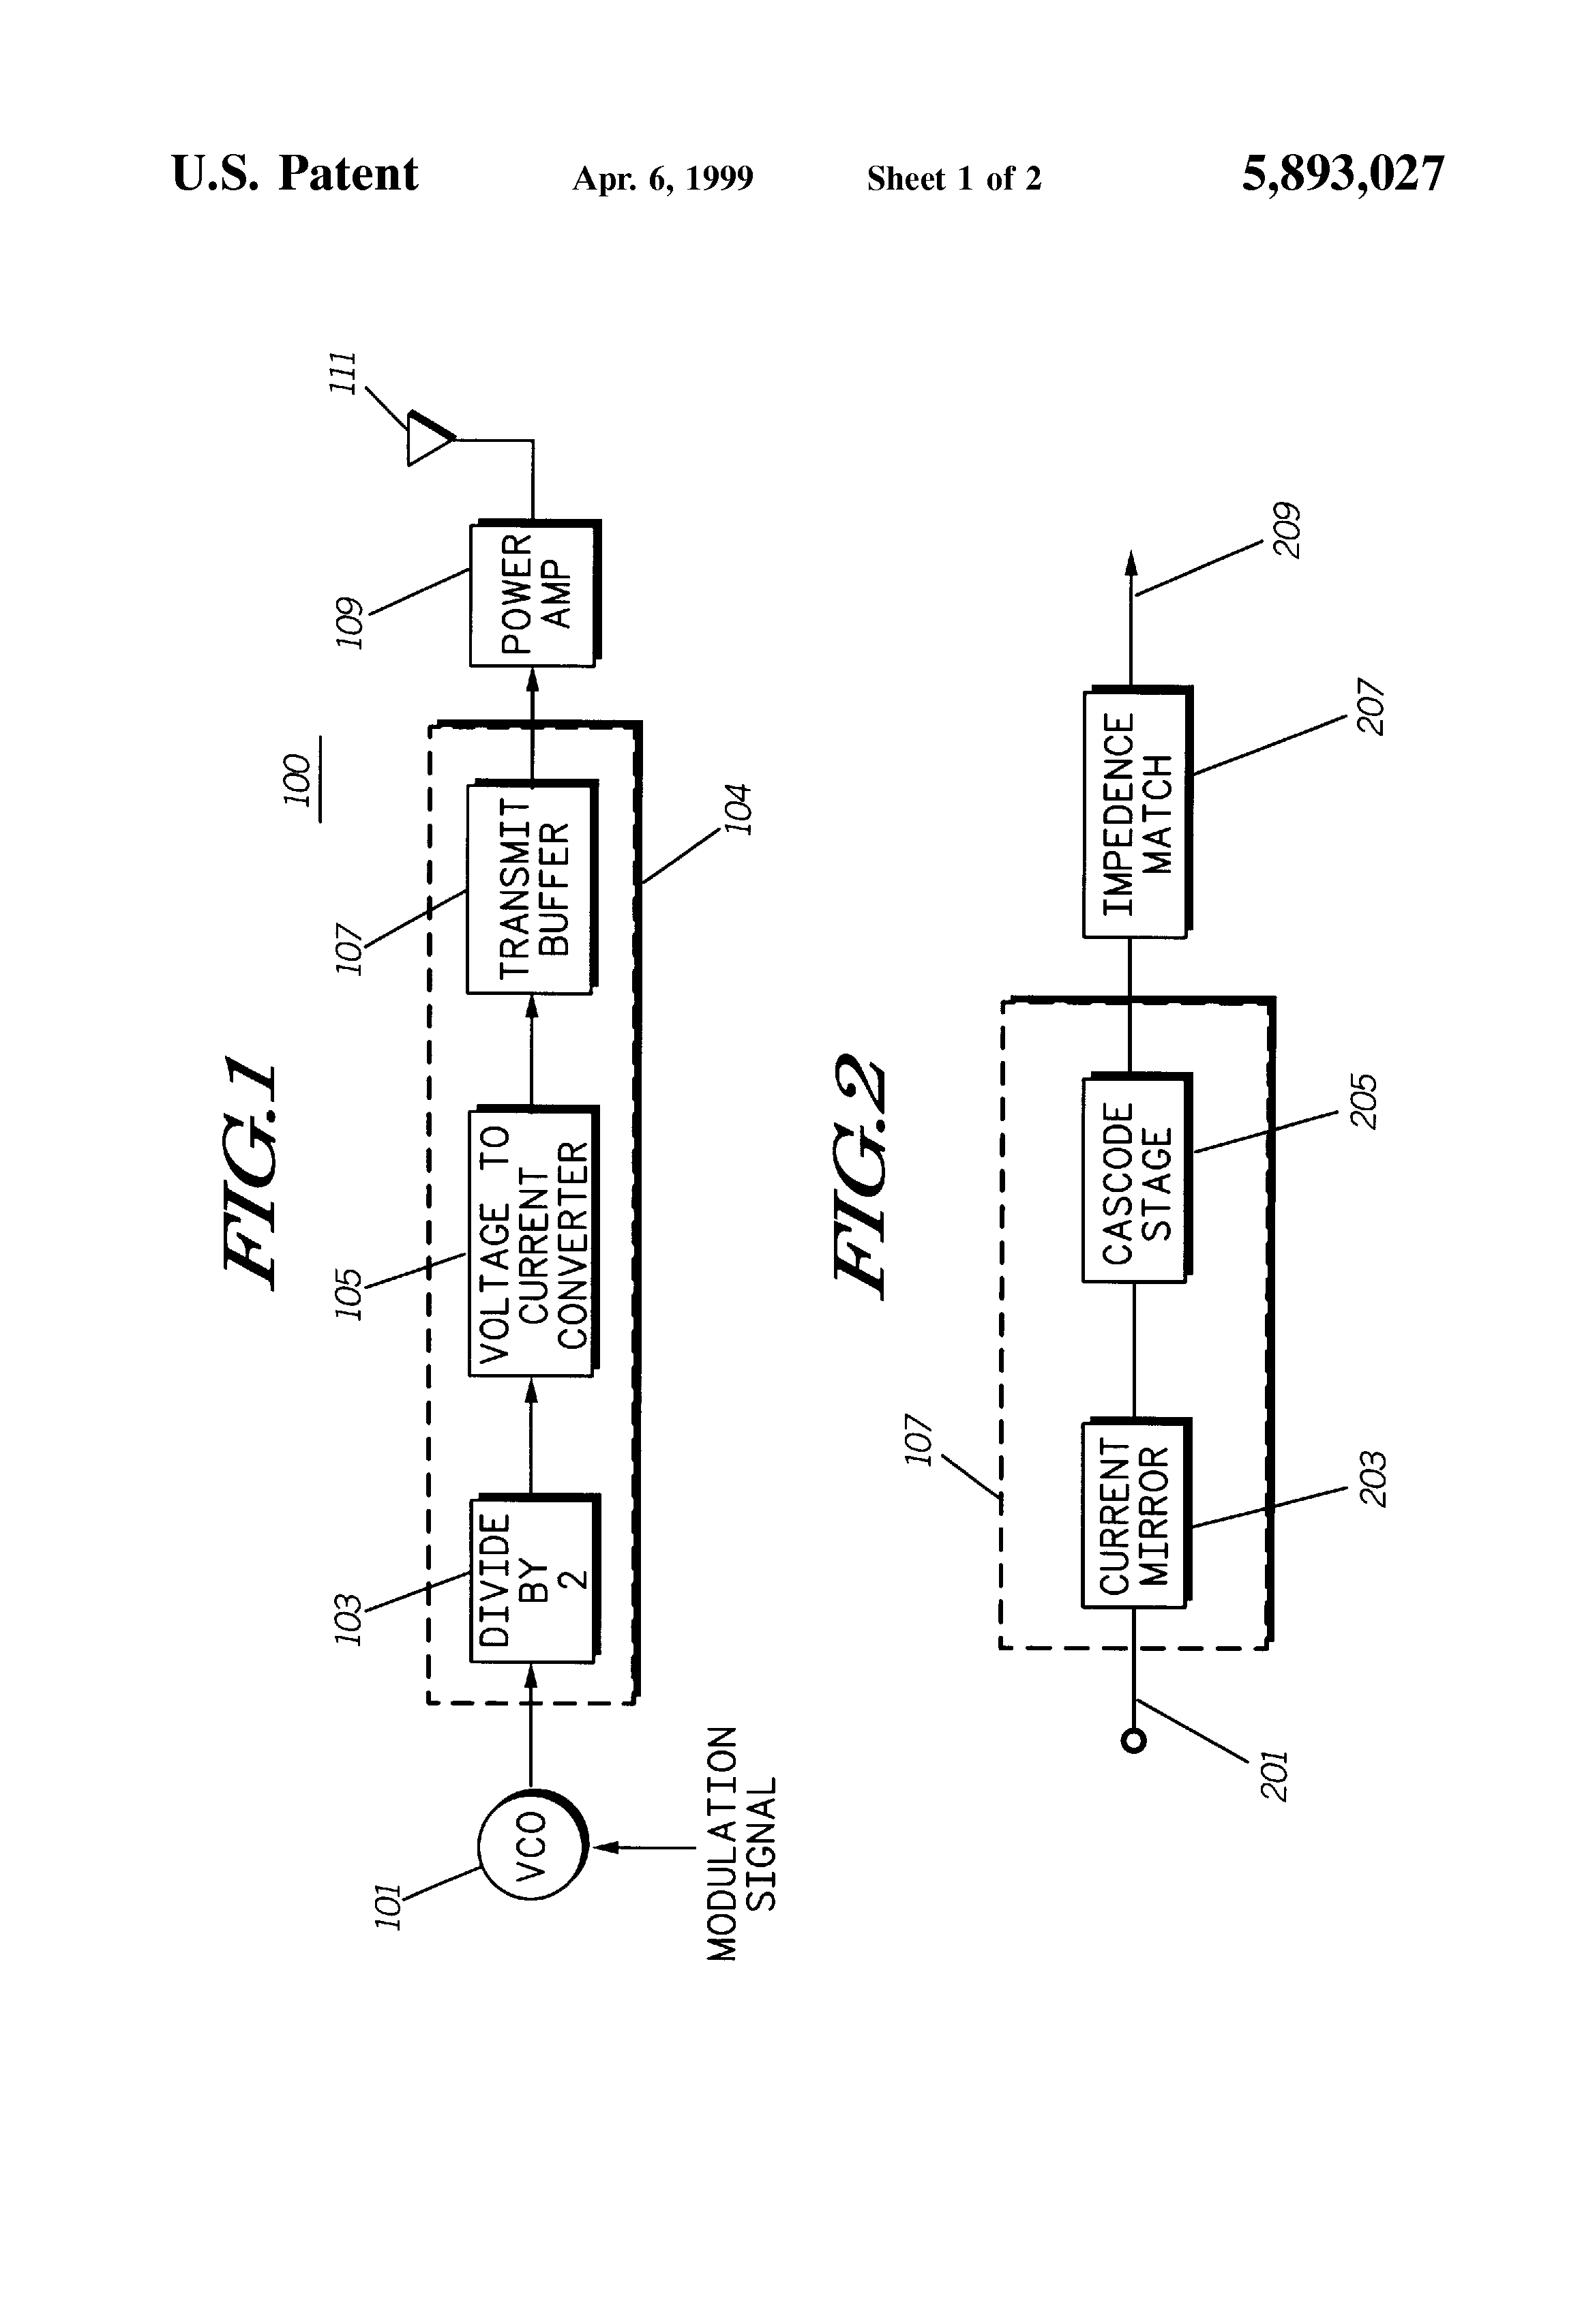 Patent Us5893027 Fully Integrated Two Way Radio Transmitter How To Use Vco Buffer For Isolating Oscillator Circuits Output Drawing